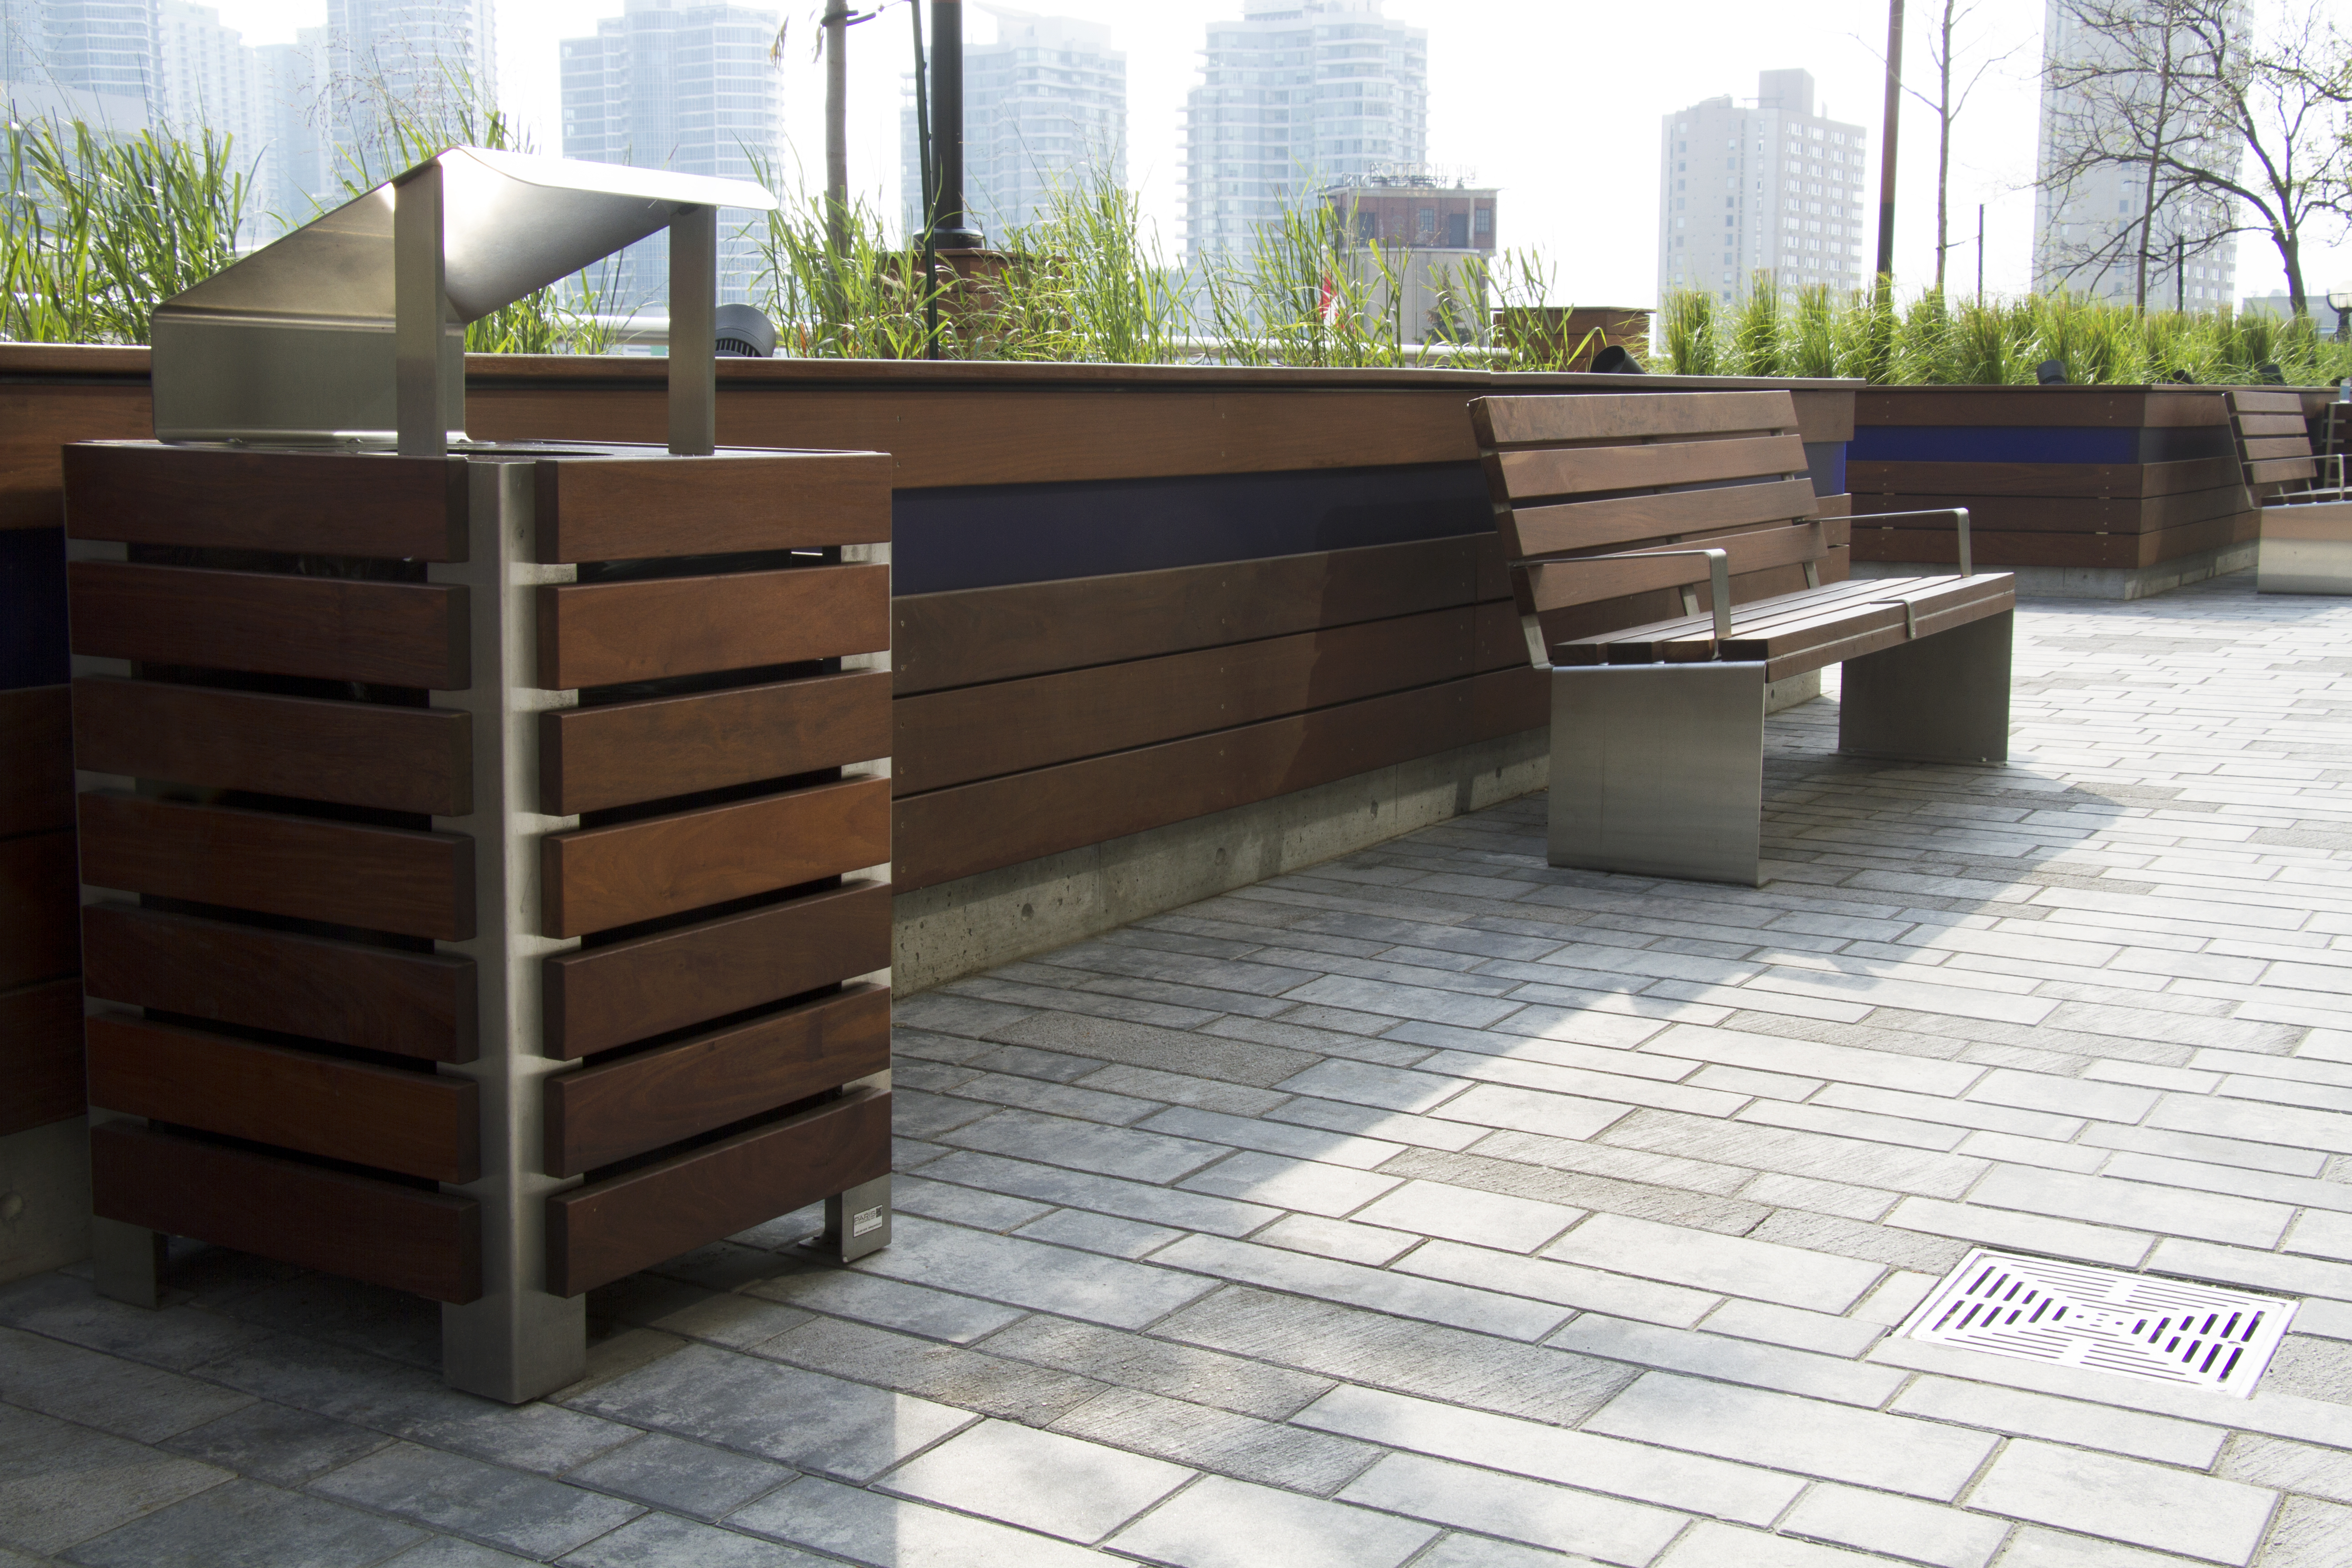 Inox Receptacle , Inox Bench